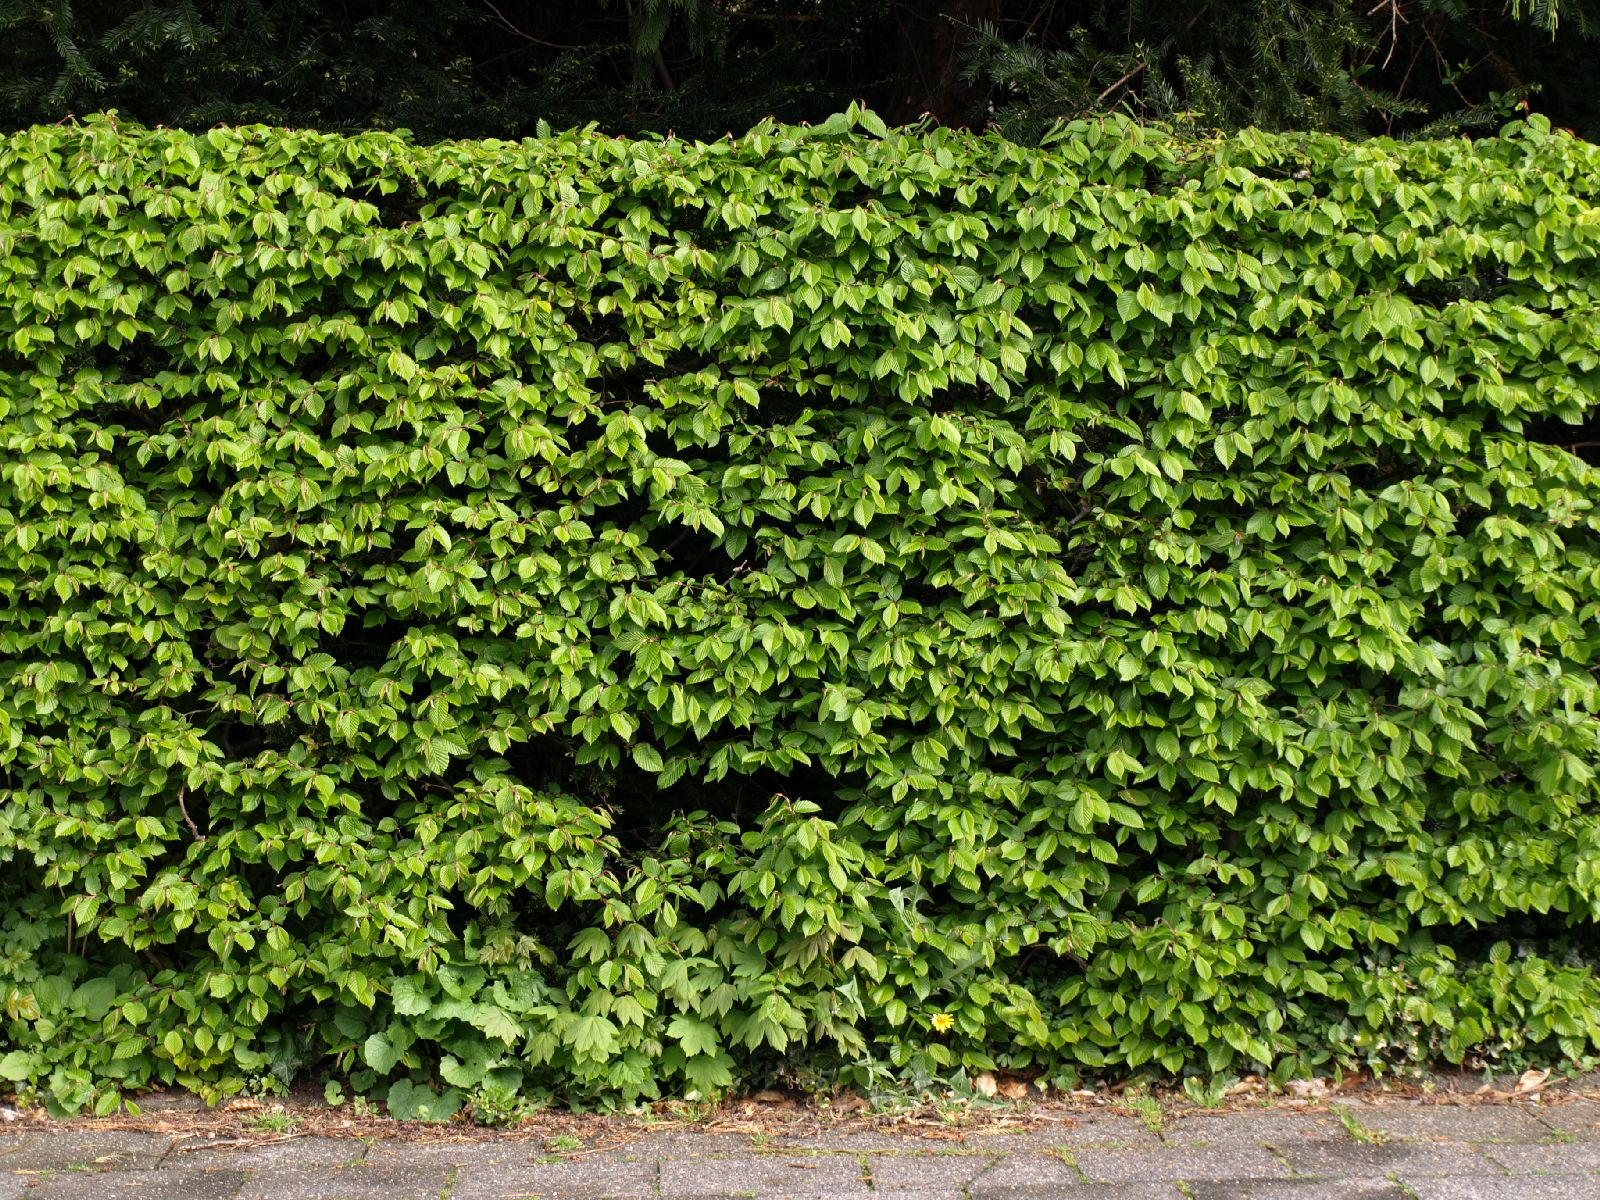 Hedge Bushes: Free Hedges Texture Photo Gallery